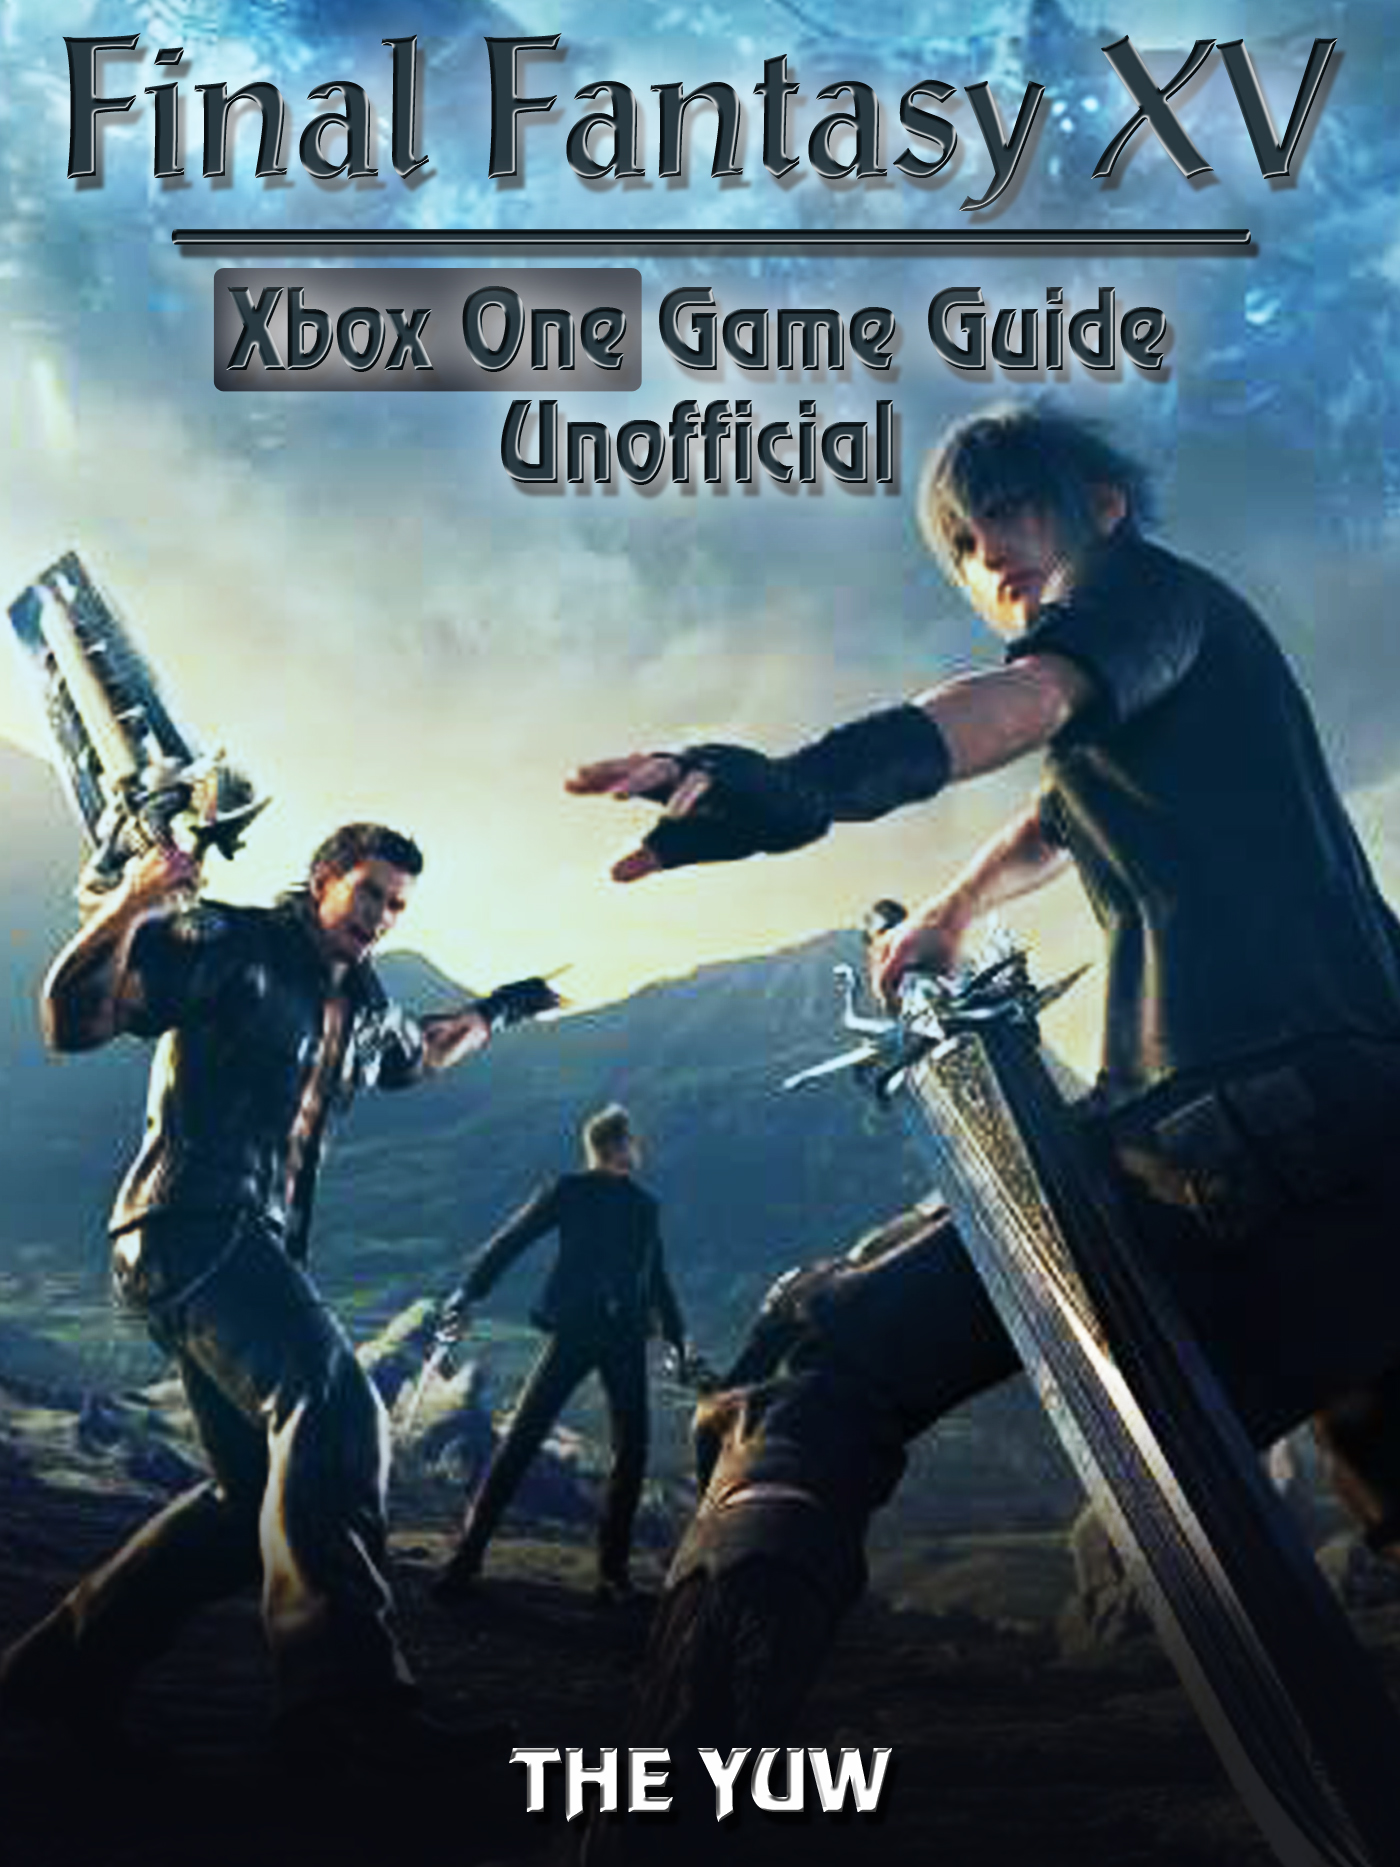 Final Fantasy XV Xbox One Game Guide Unofficial